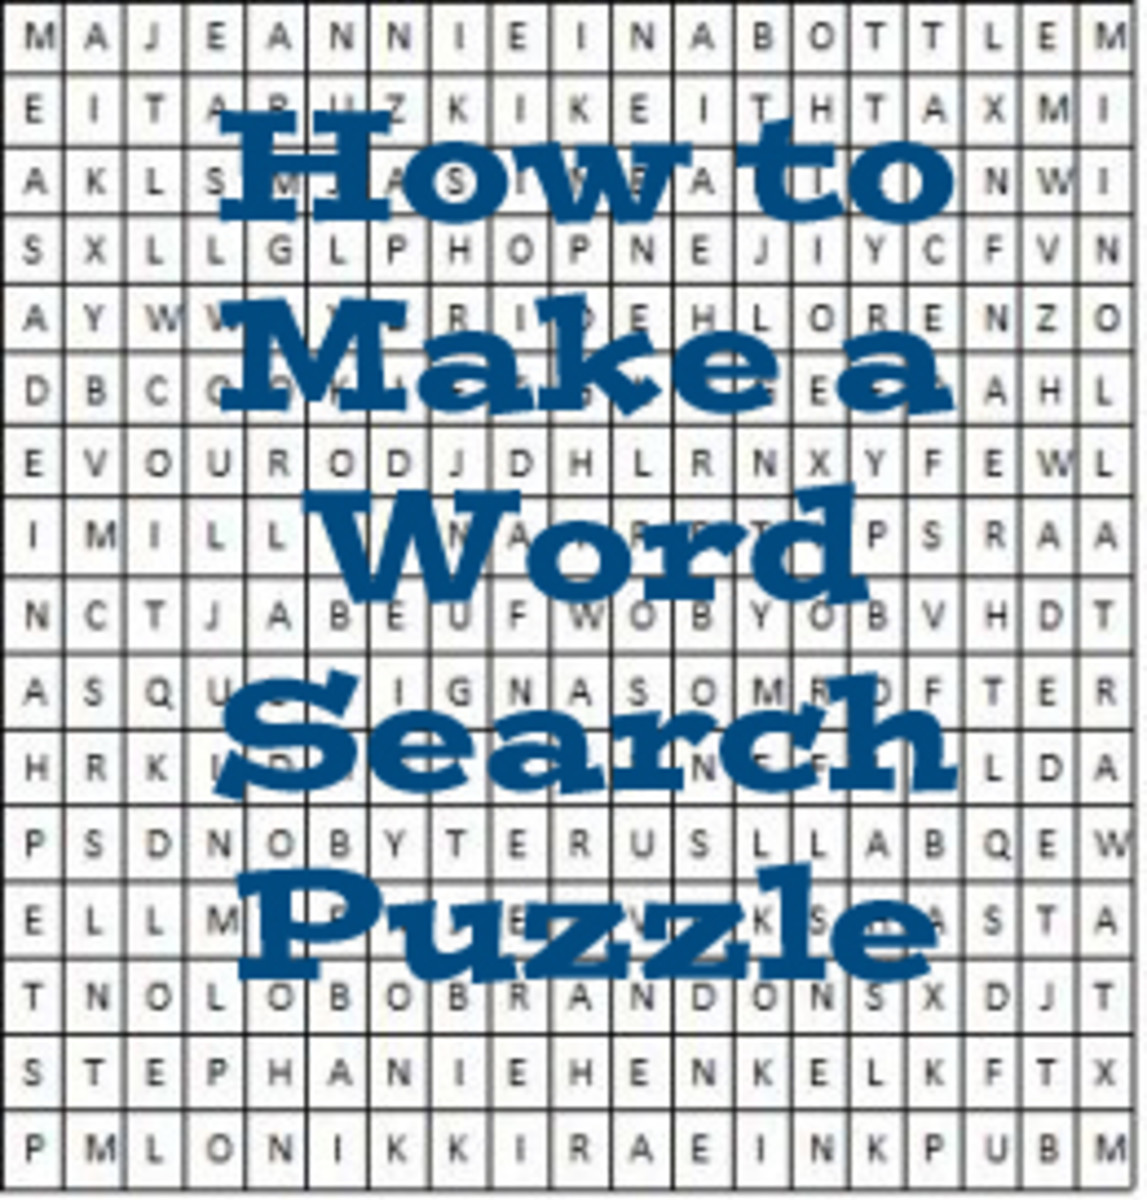 Easy Steps to Create Your Own Word Search Puzzle